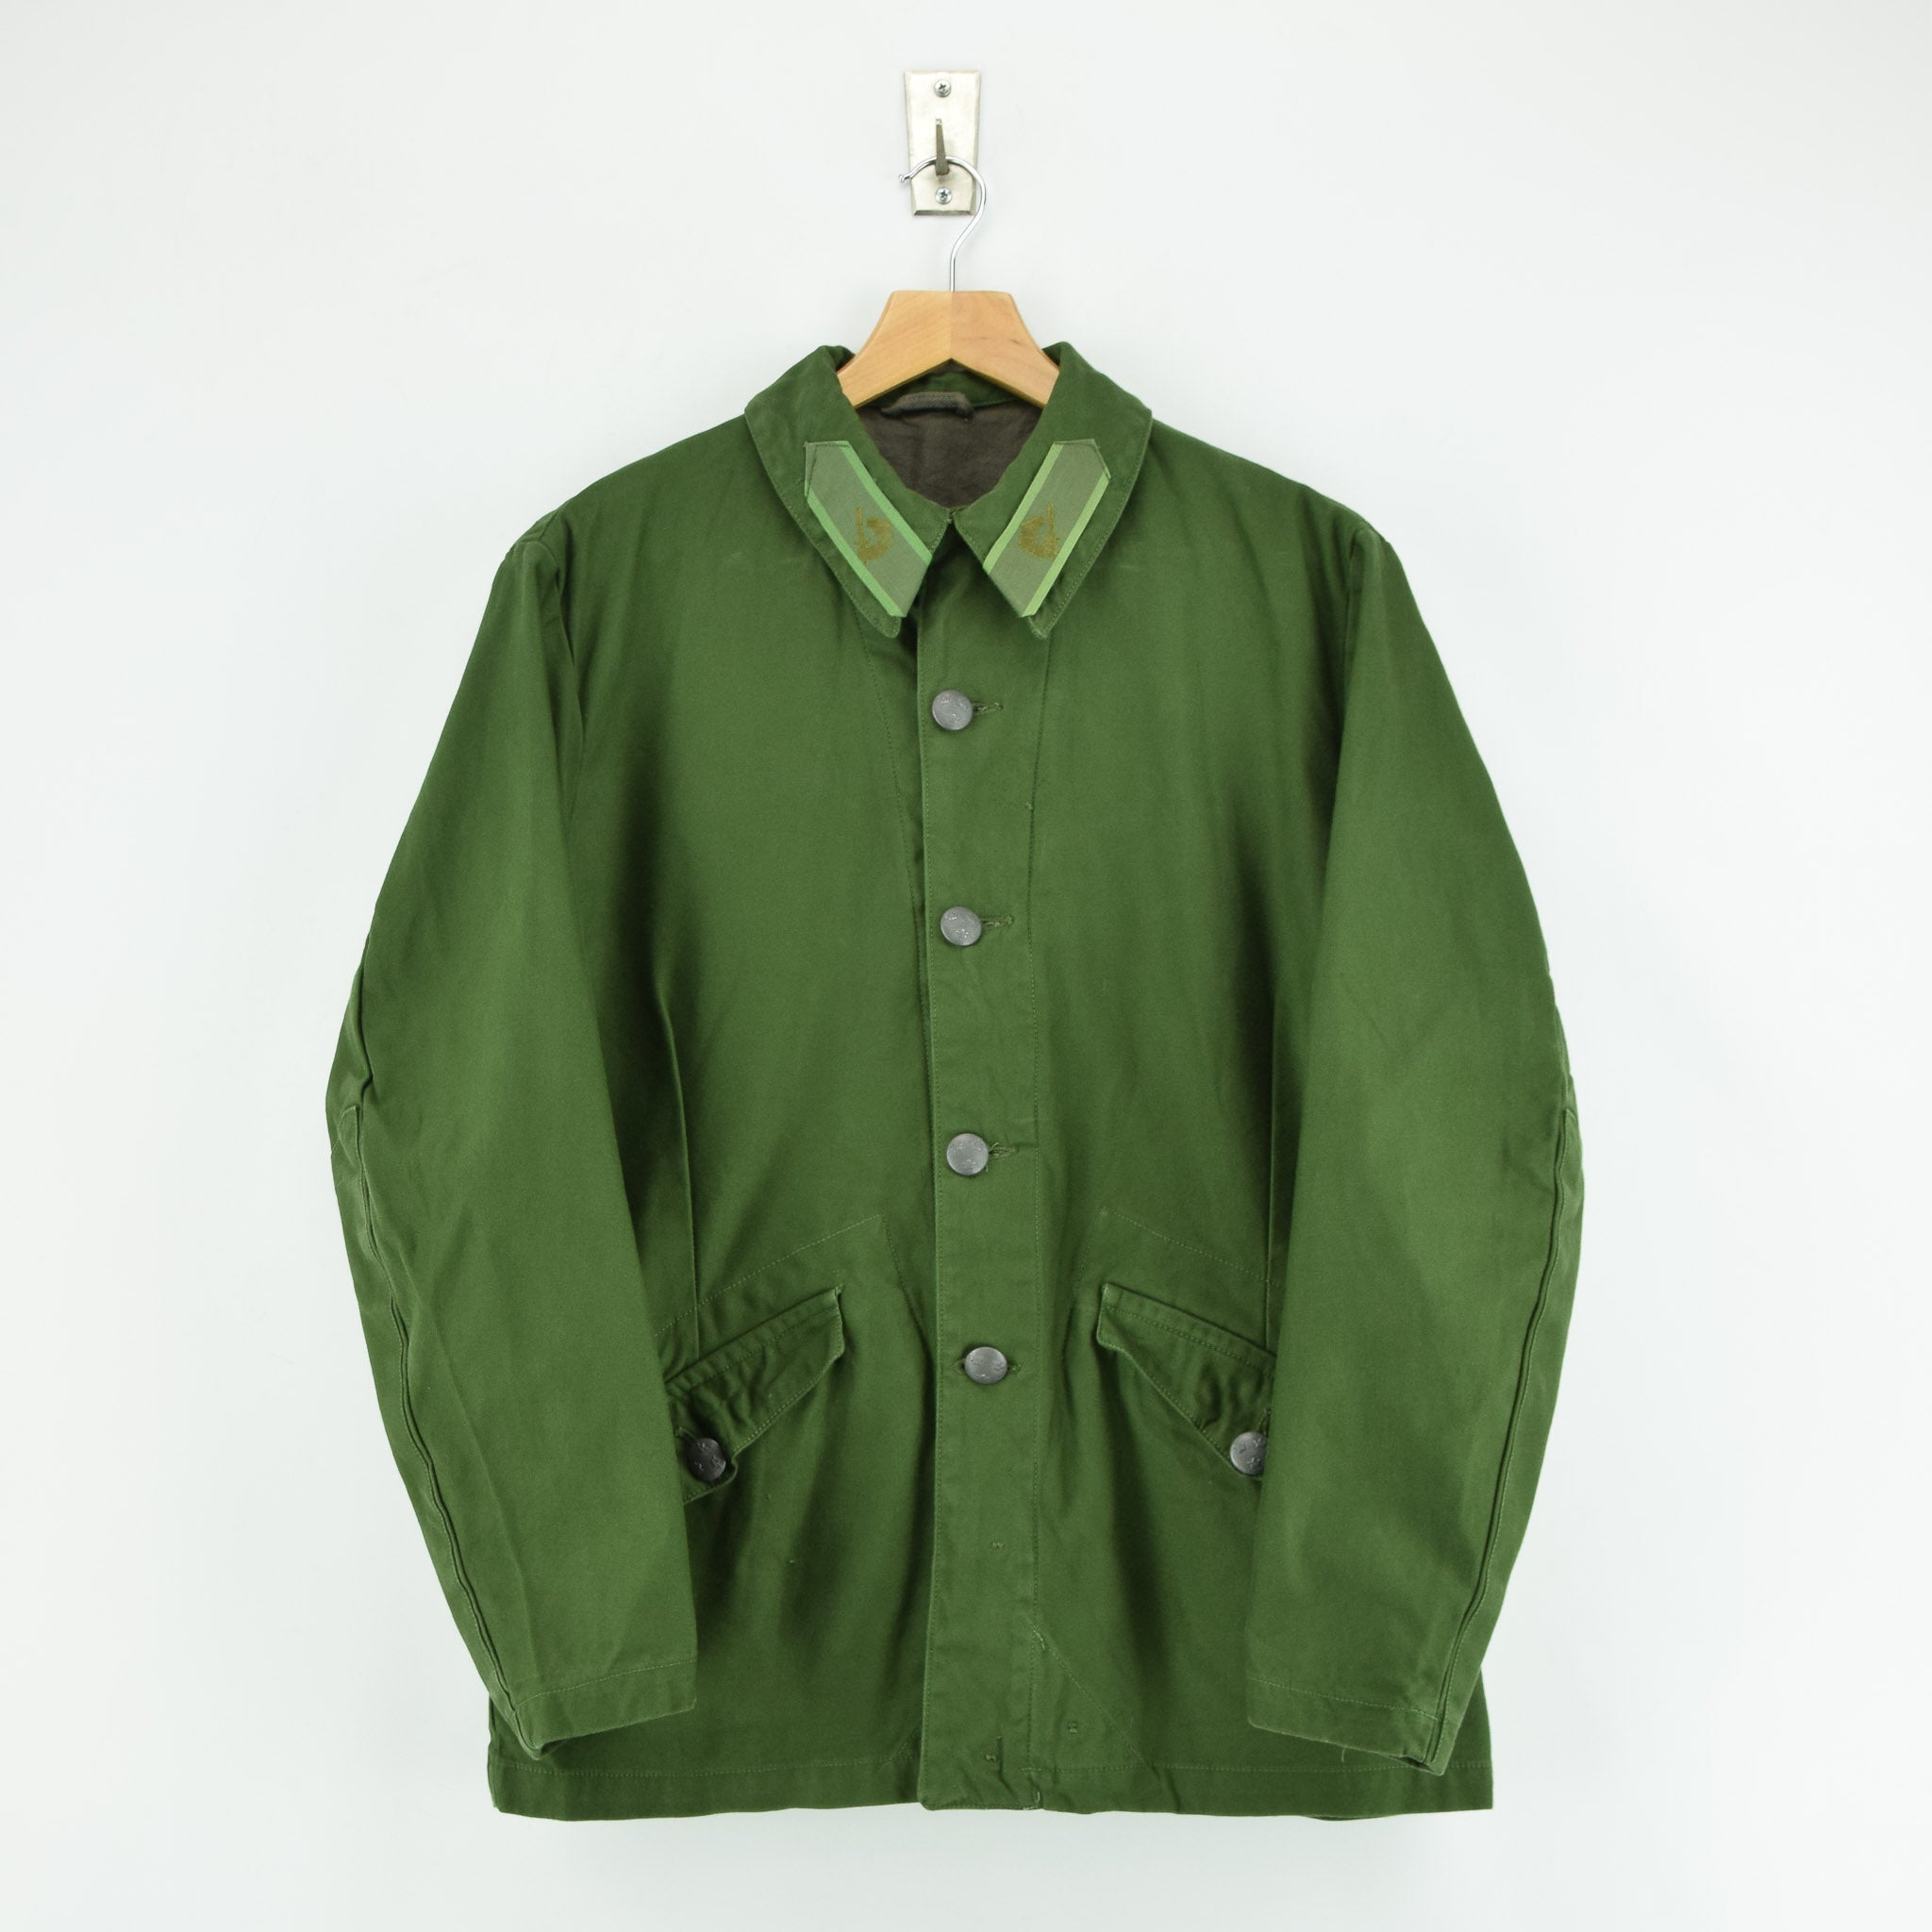 Vintage 60s Swedish M59 Field Military Olive Green Worker Style Jacket S front